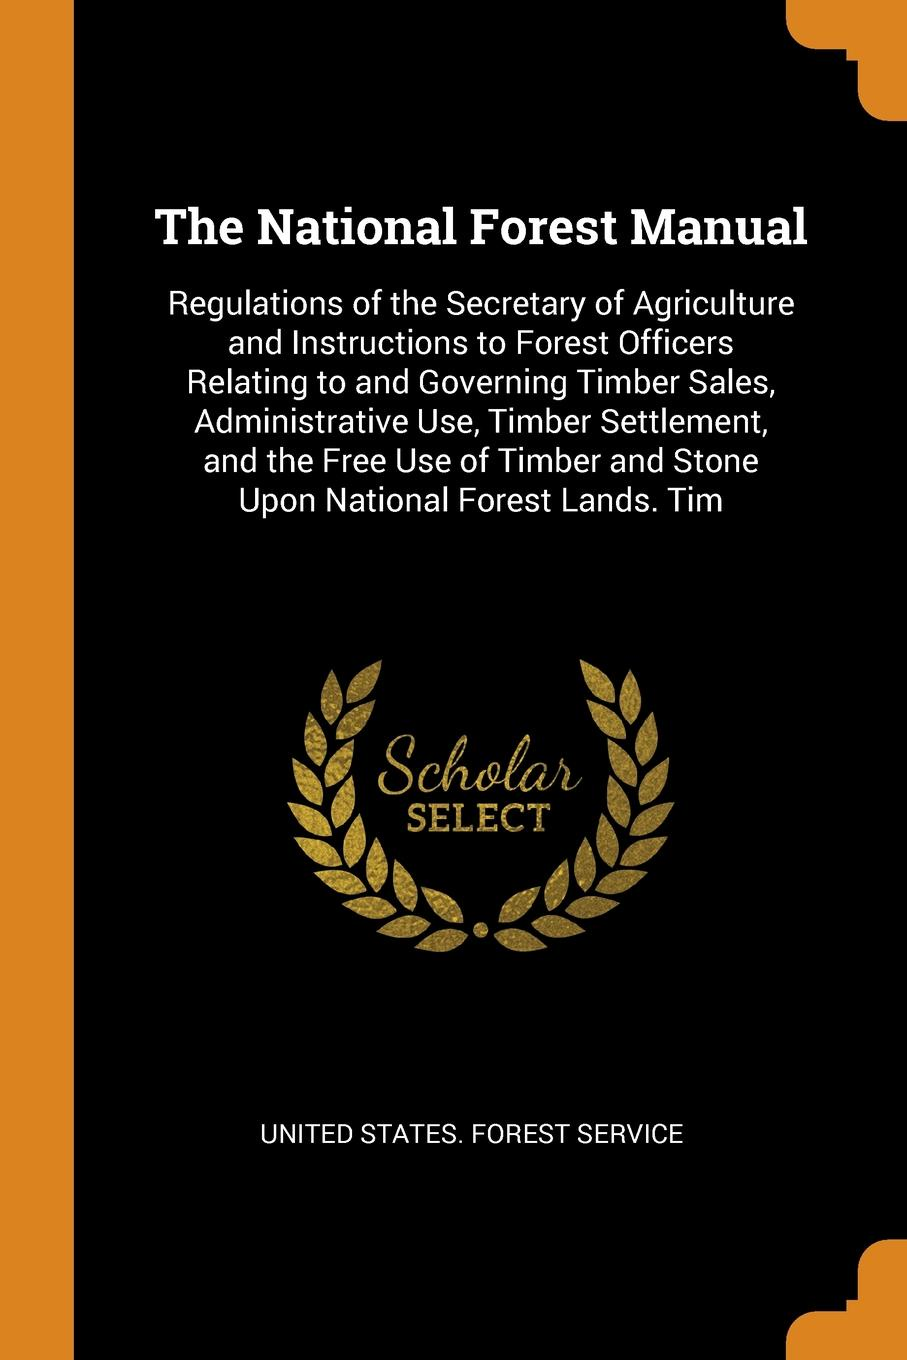 The National Forest Manual. Regulations of the Secretary of Agriculture and Instructions to Forest Officers Relating to and Governing Timber Sales, Administrative Use, Timber Settlement, and the Free Use of Timber and Stone Upon National Forest La... forest resource use by adjacent communities of mau forest complex